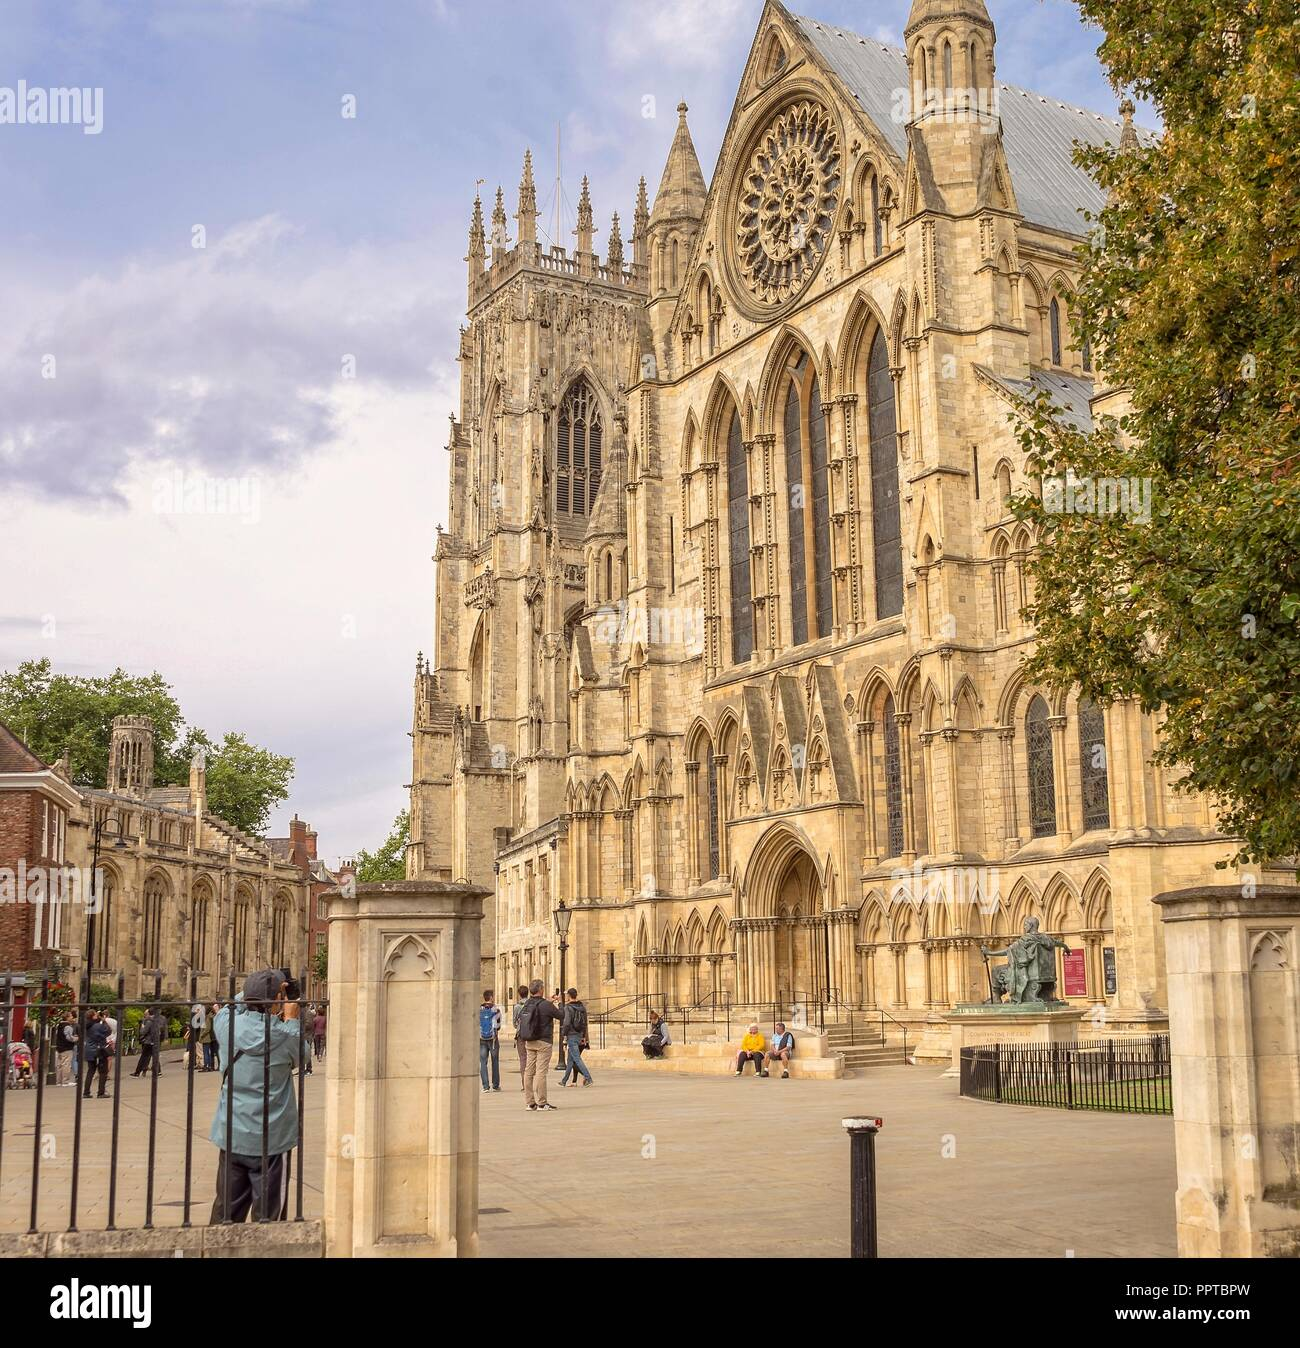 South facing wing of York Minster.  A well-known attraction, tourists gather to take photographs. Stock Photo